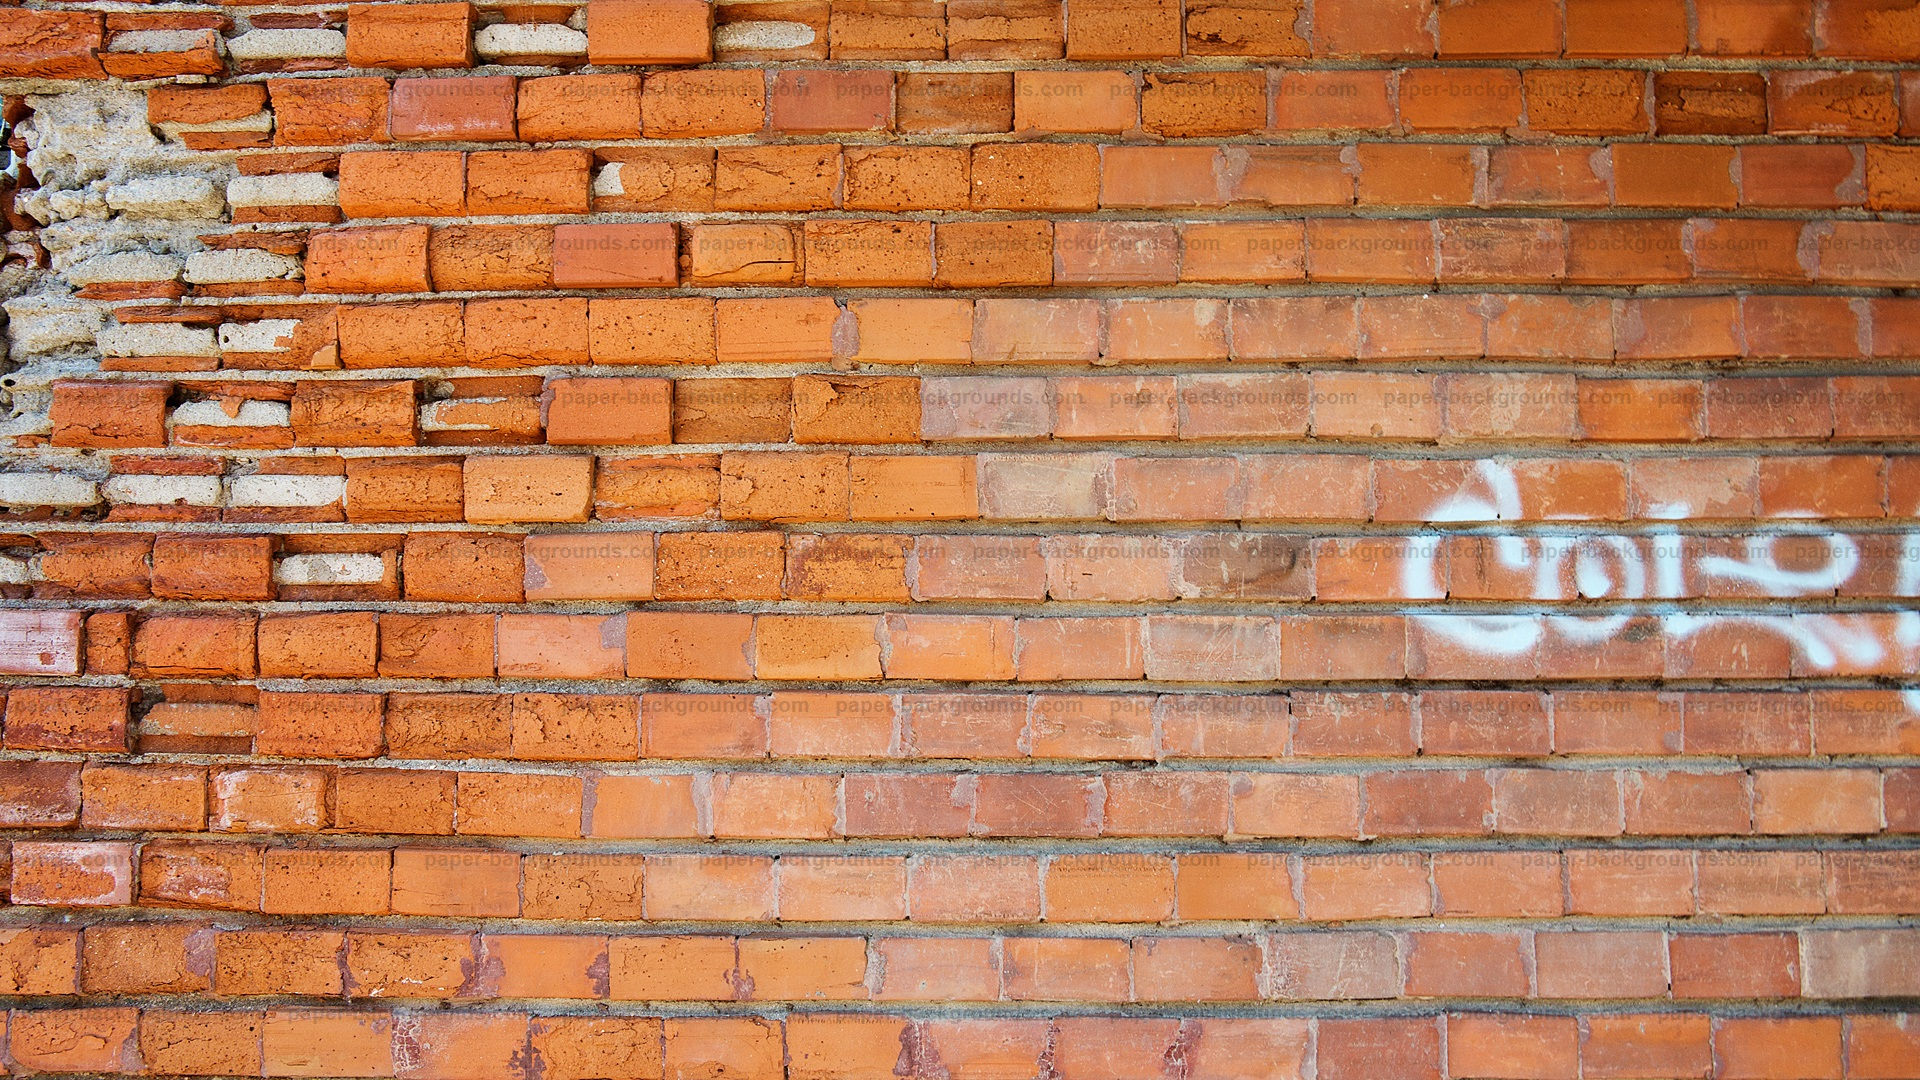 Brick wall hd wallpaper 674746 for Wallpaper for walls